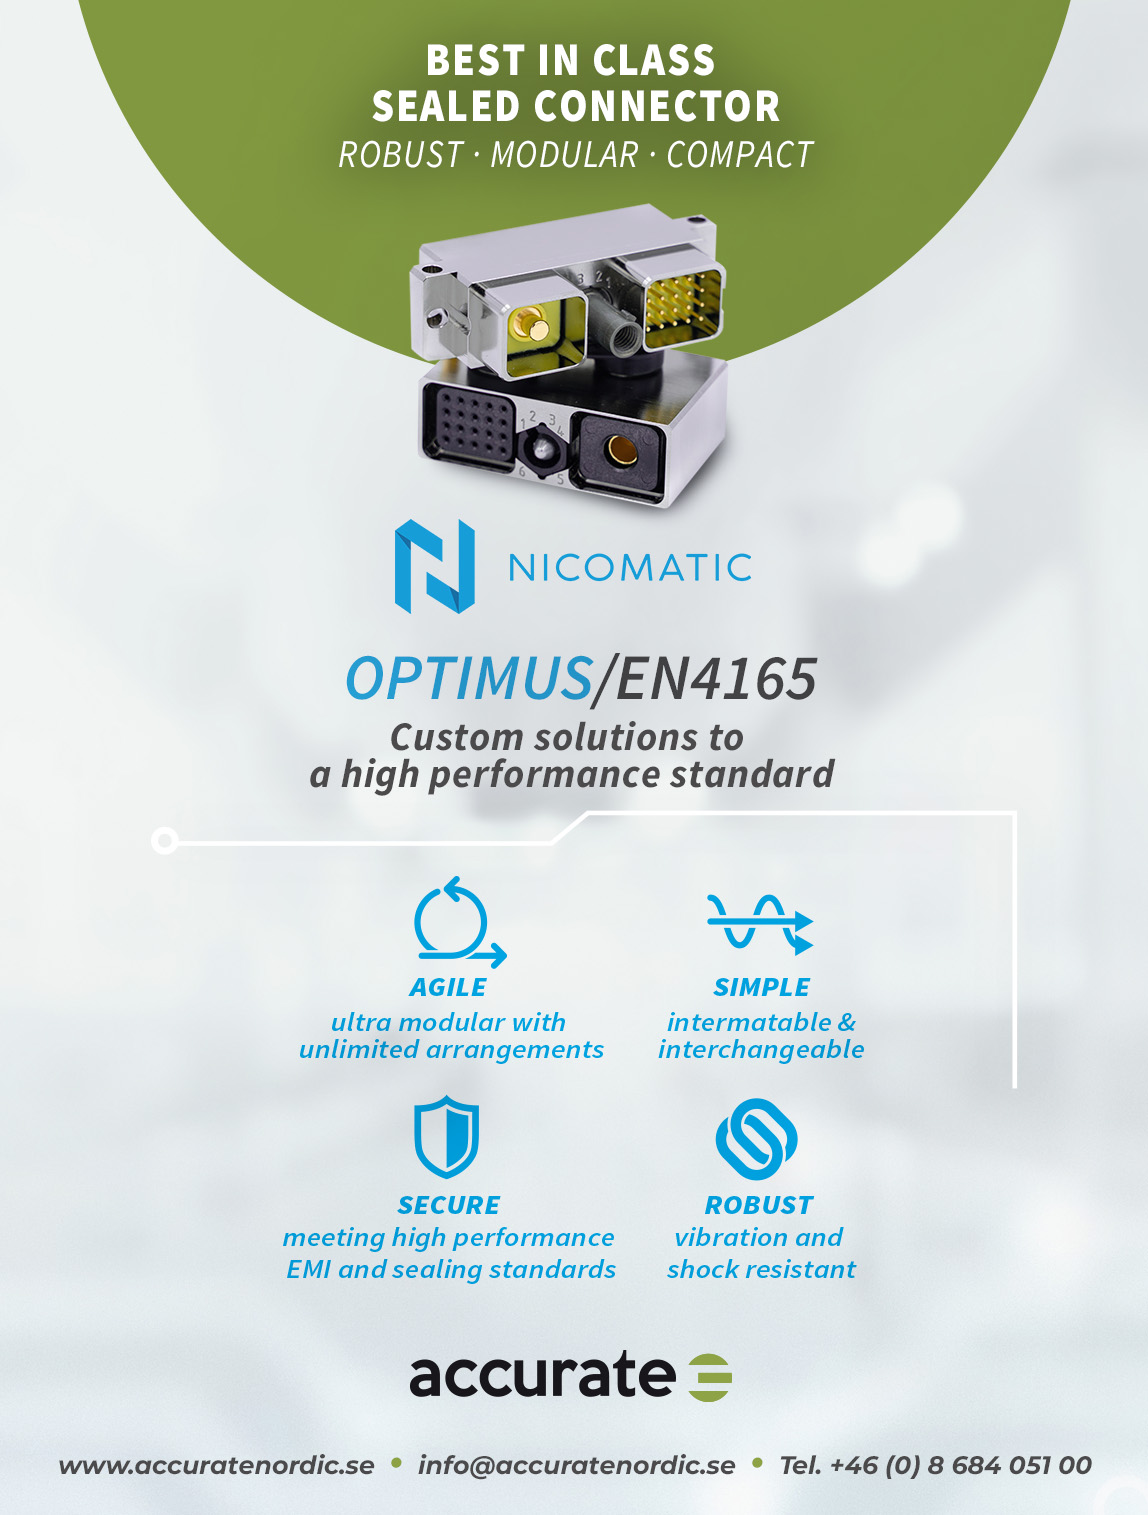 Nicomatic Optimus By Accurate Nordic